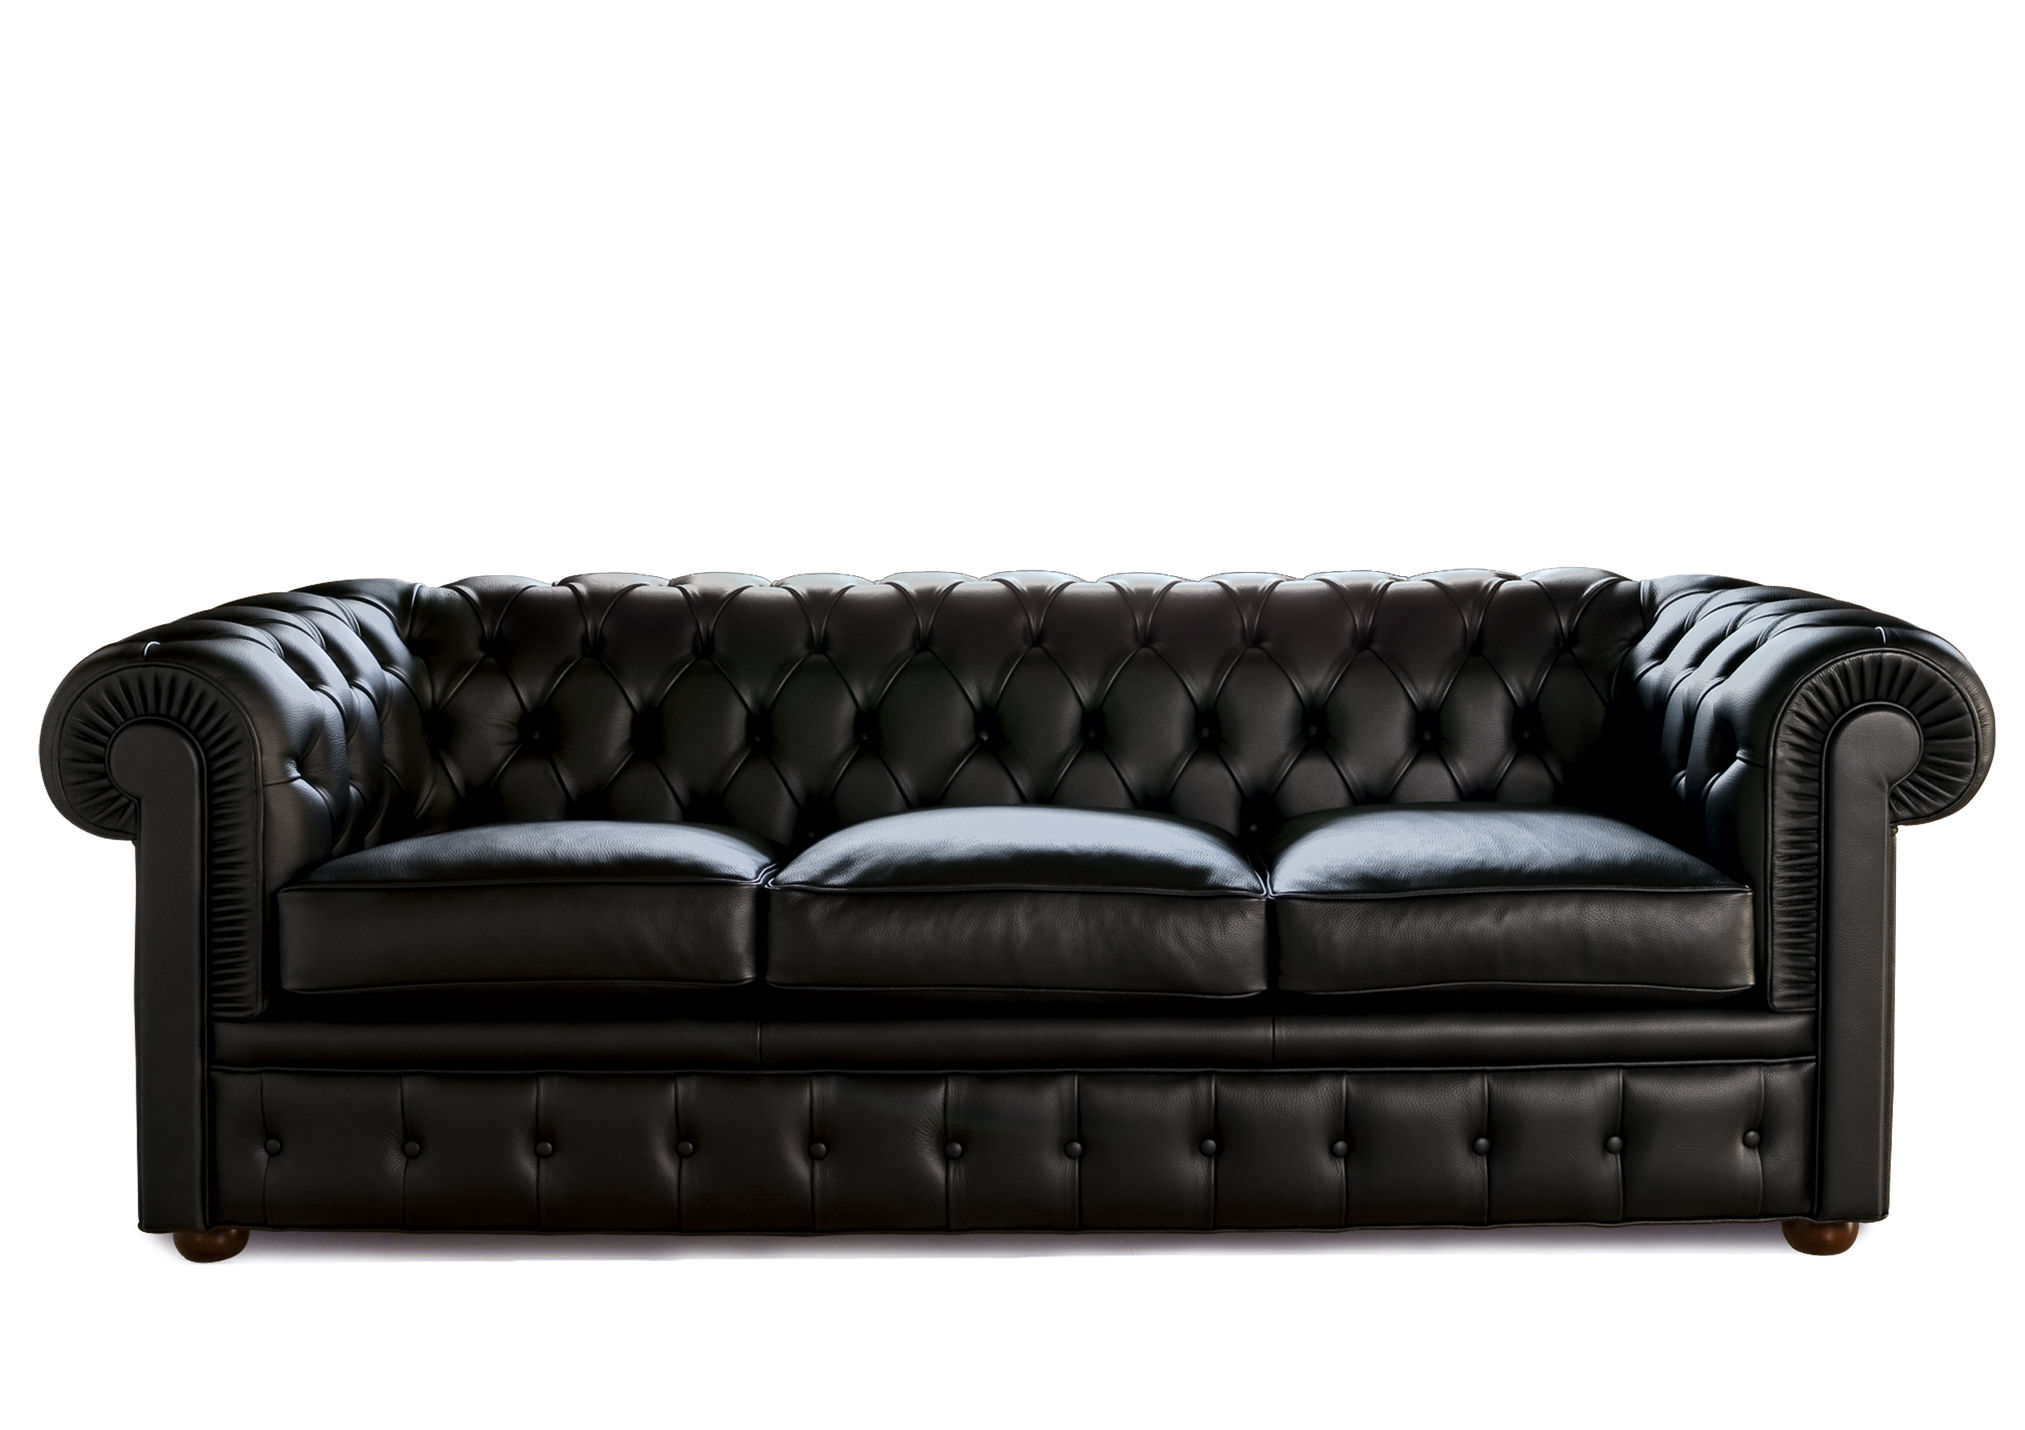 Sofa Bed Chesterfield Fabric Leather Chester